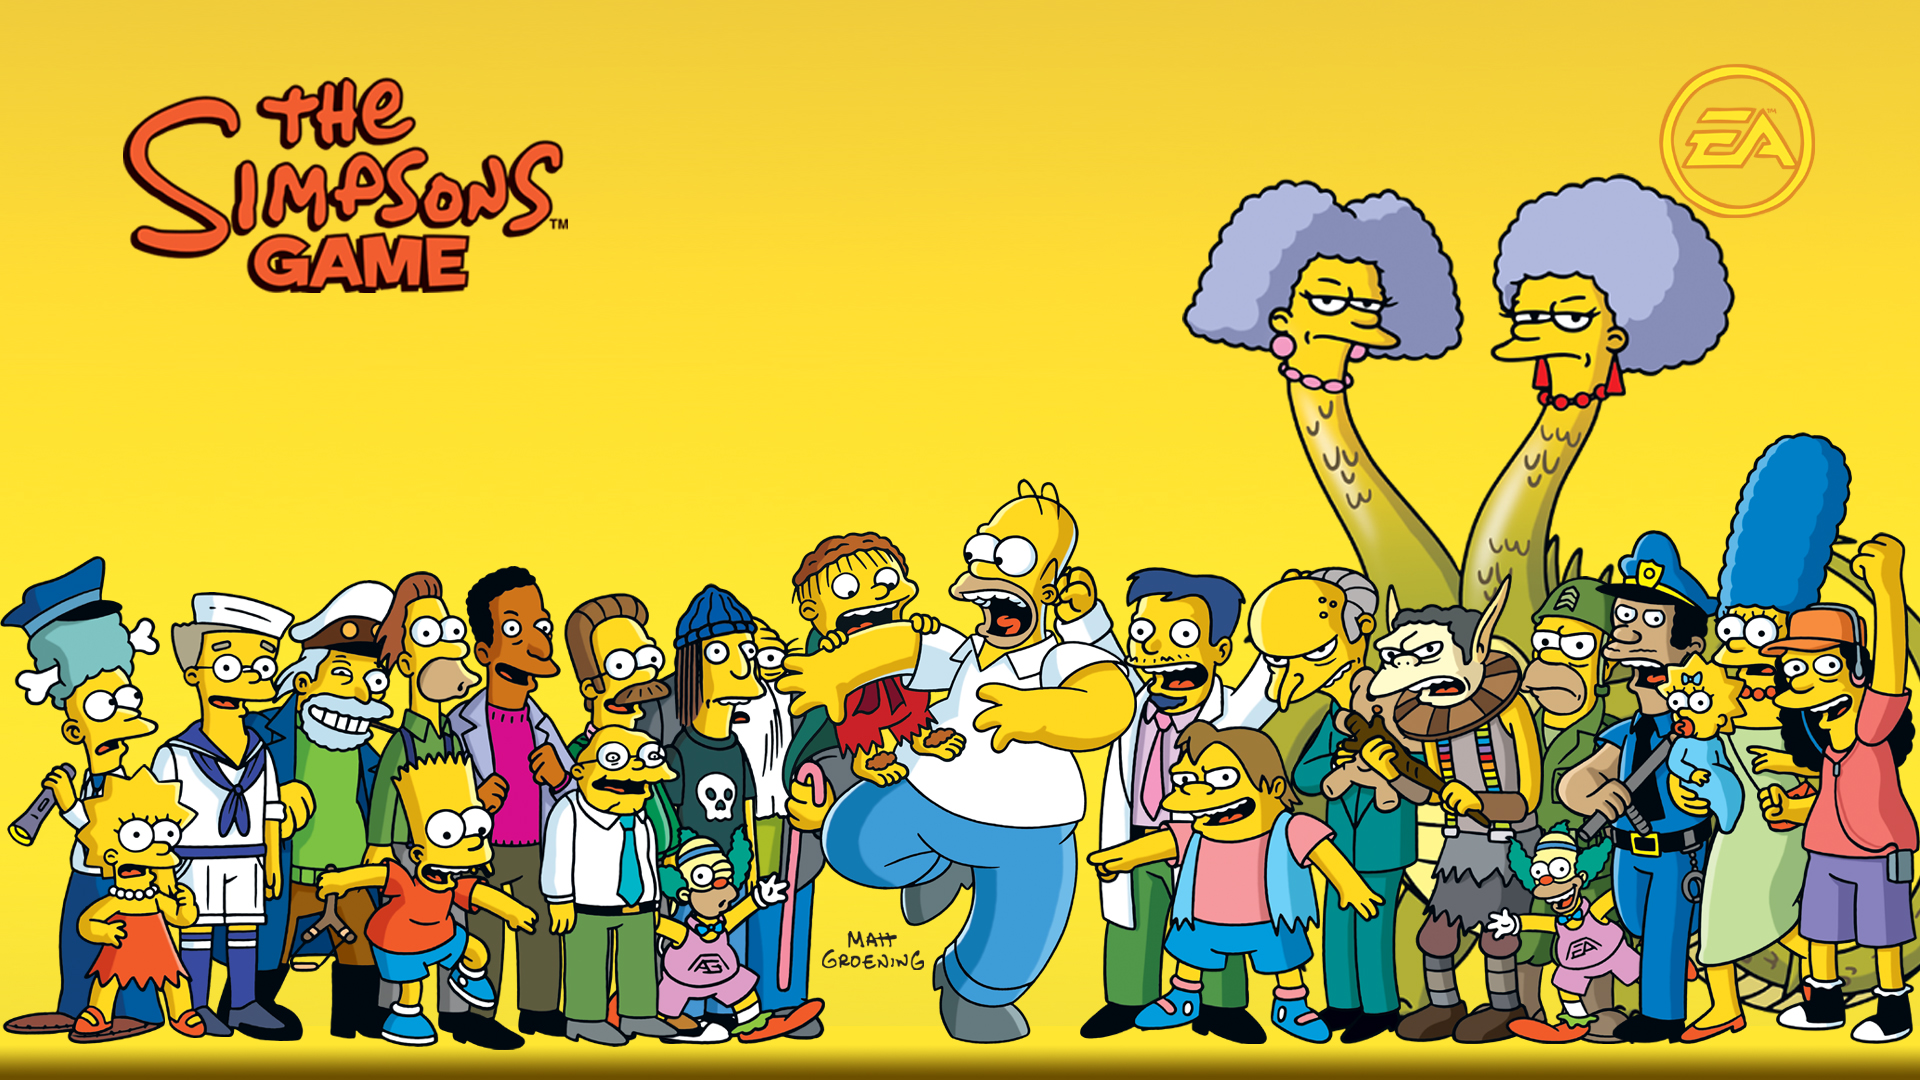 This is a The Simpsons wallpaper. This The Simpsons background can be used